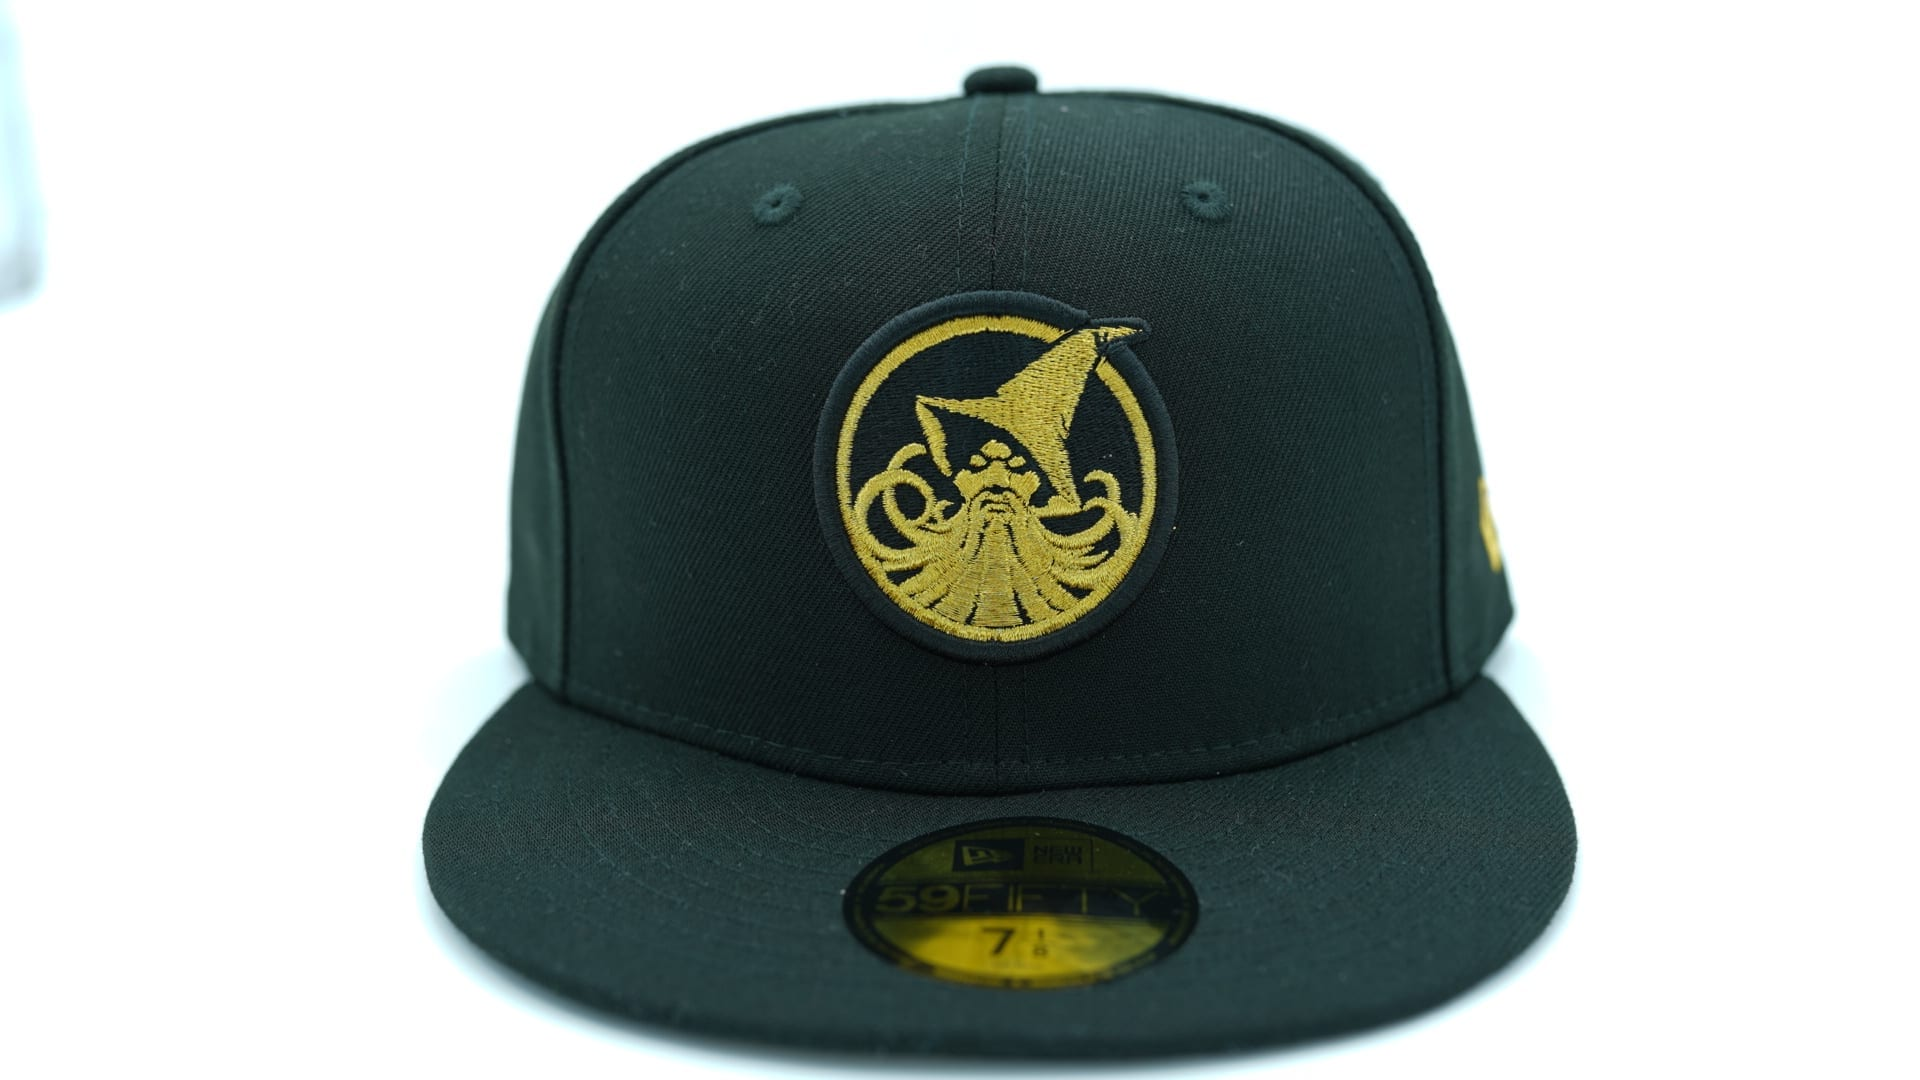 Star Wars Collector Edition Fitted Cap Blister Pack by NEW ERA x STAR WARS